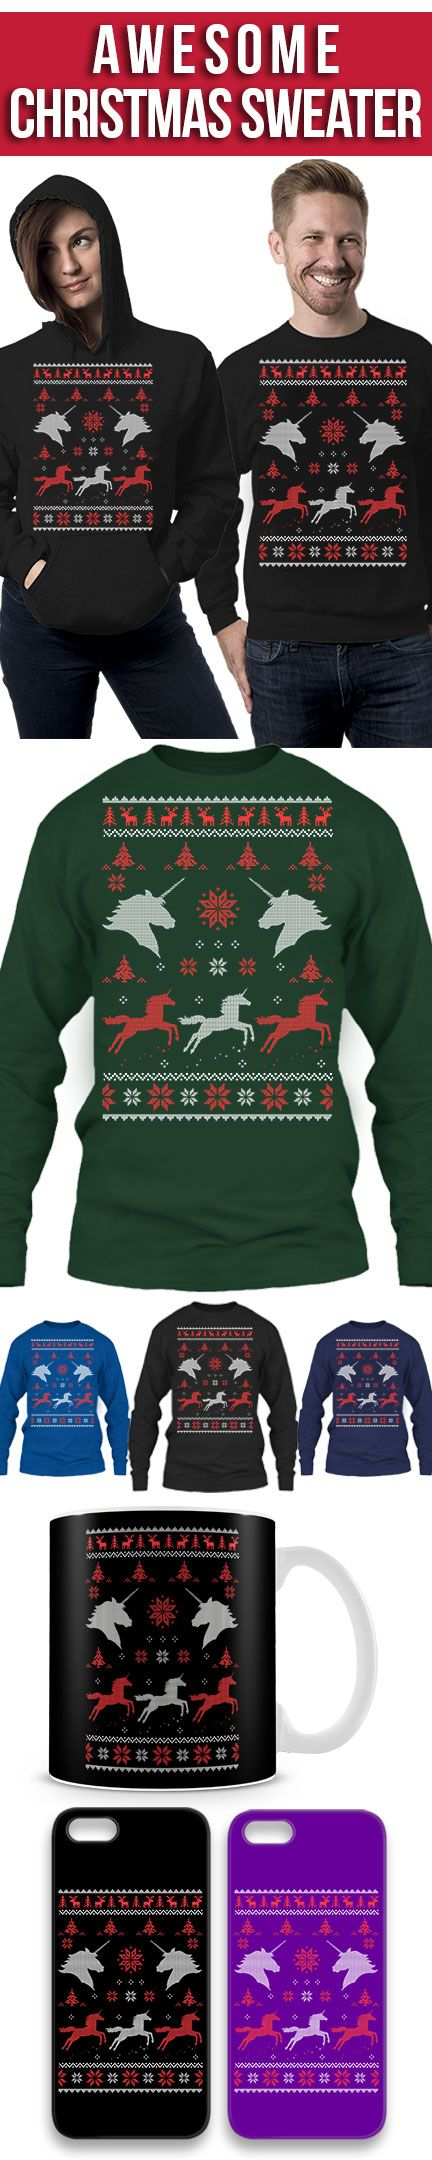 Best 25  Matching christmas sweaters ideas on Pinterest   Diy ugly ...